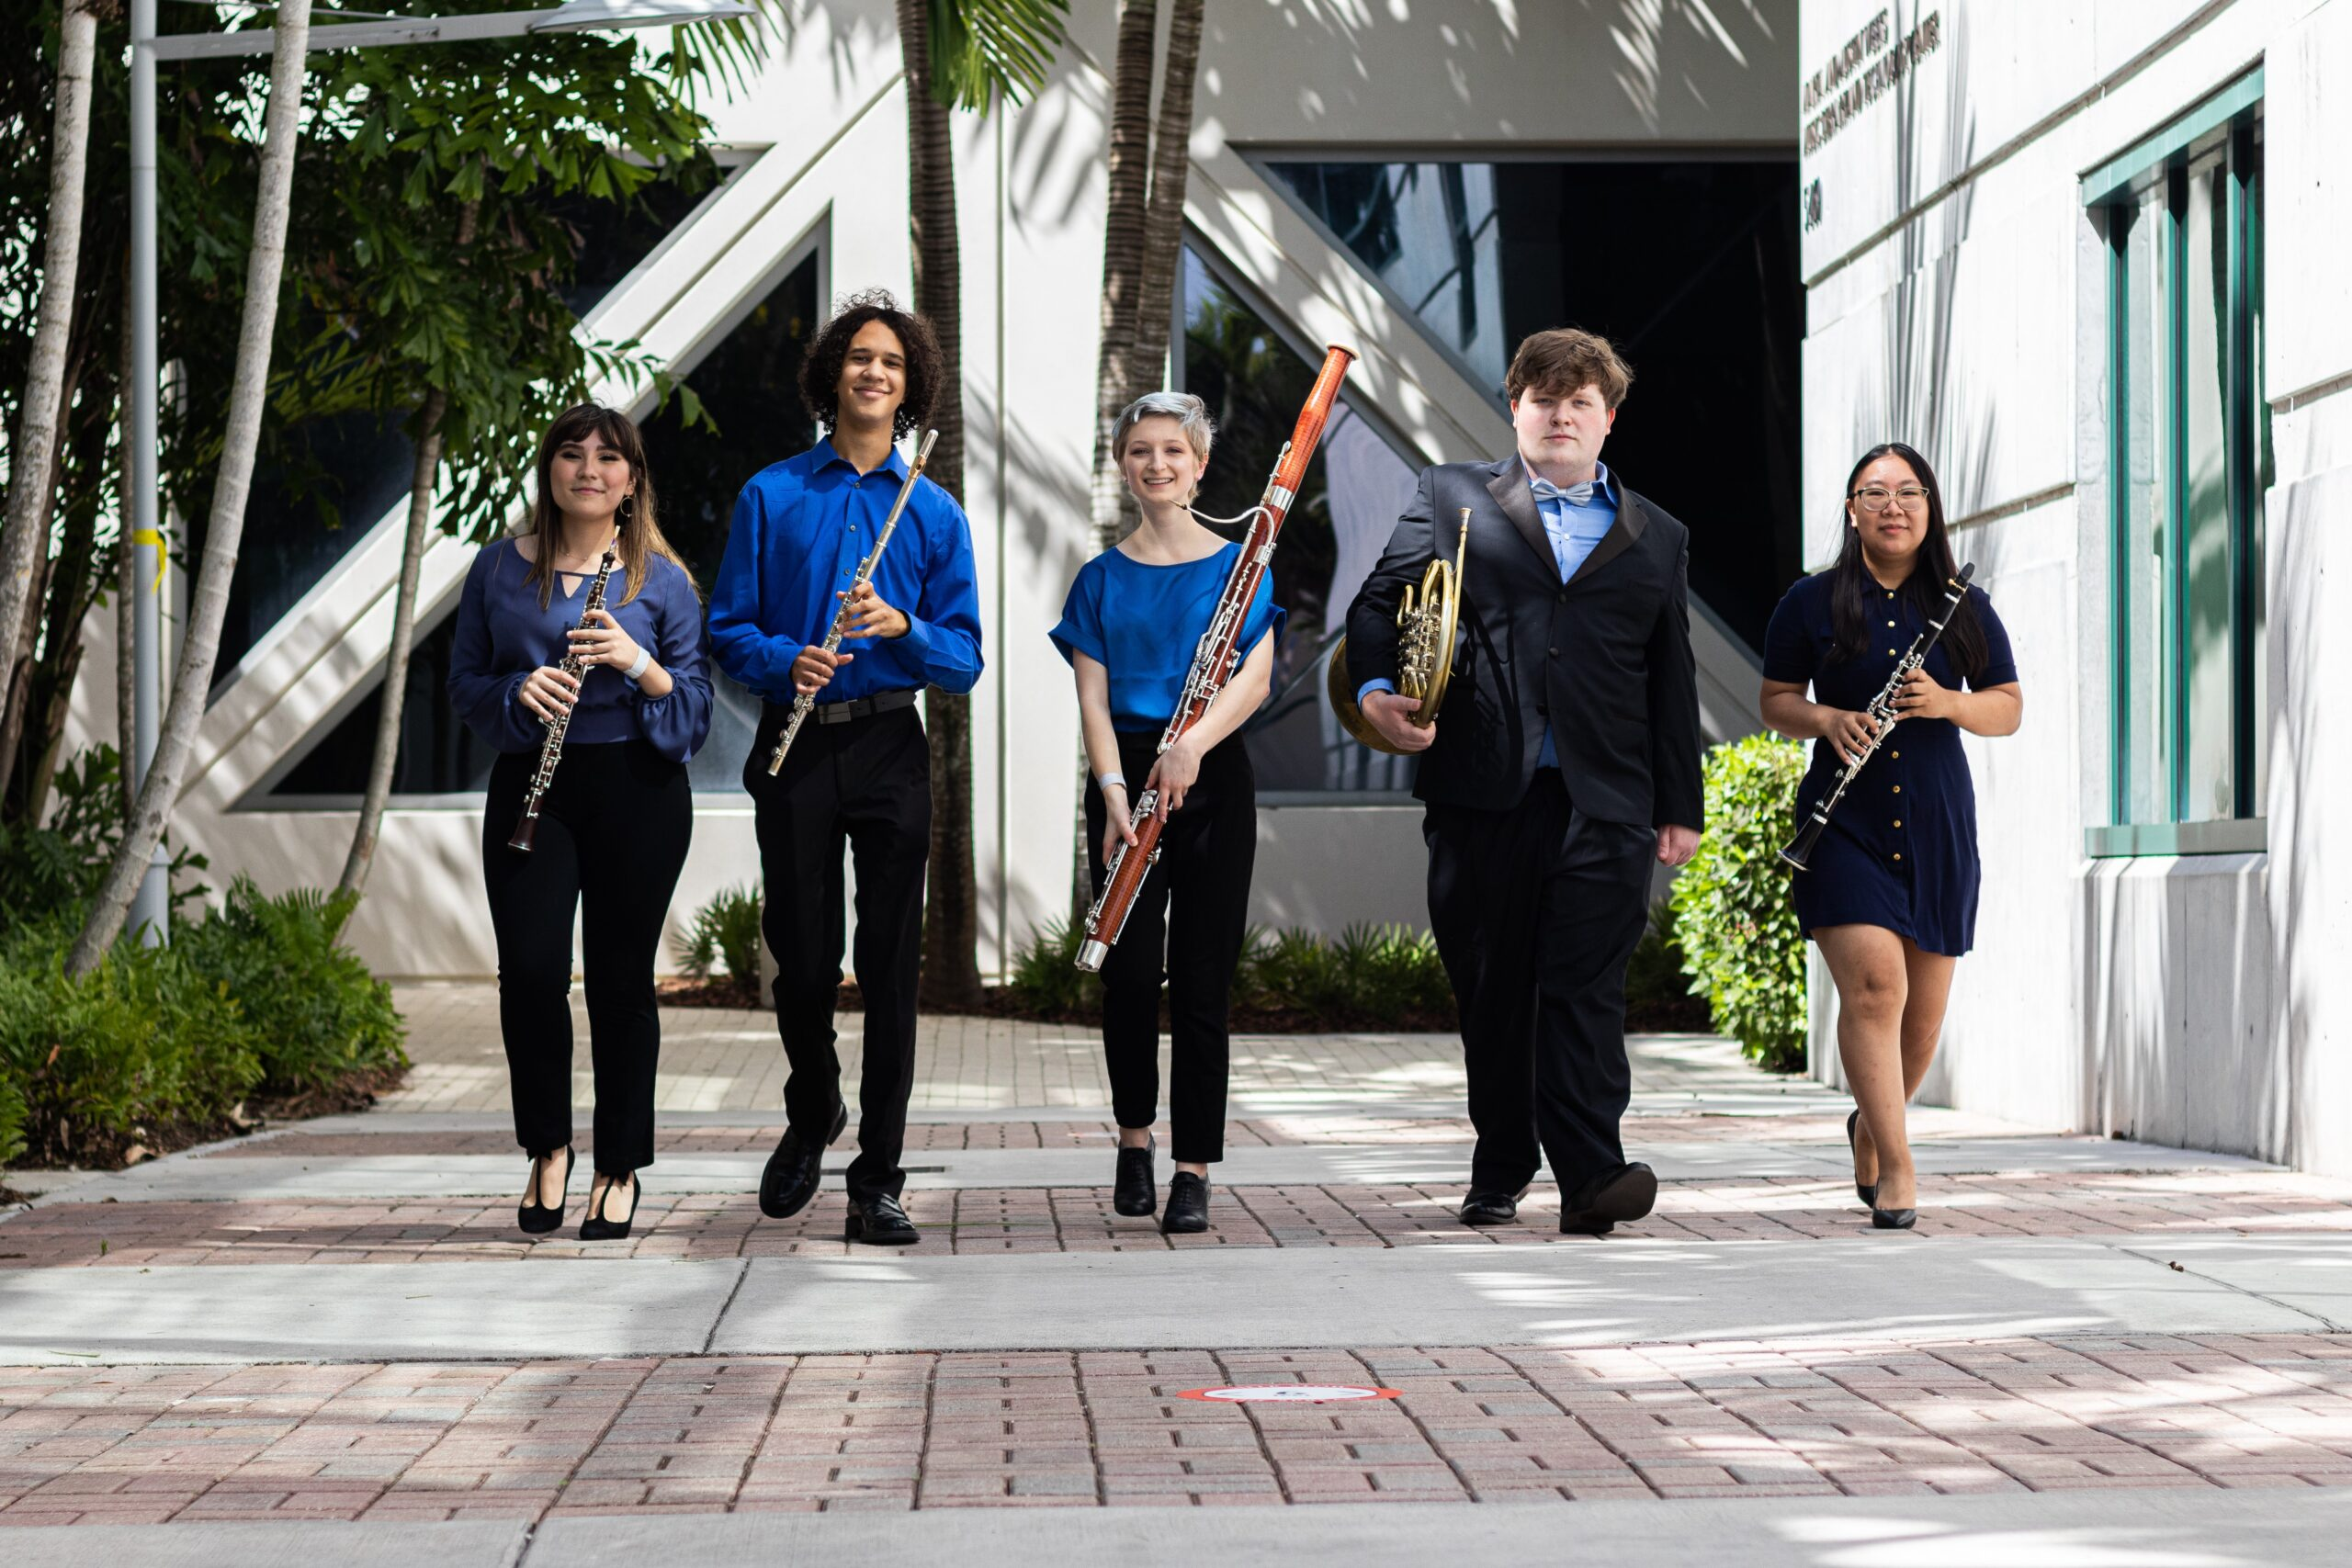 five young musicians holding woodwinds instruments